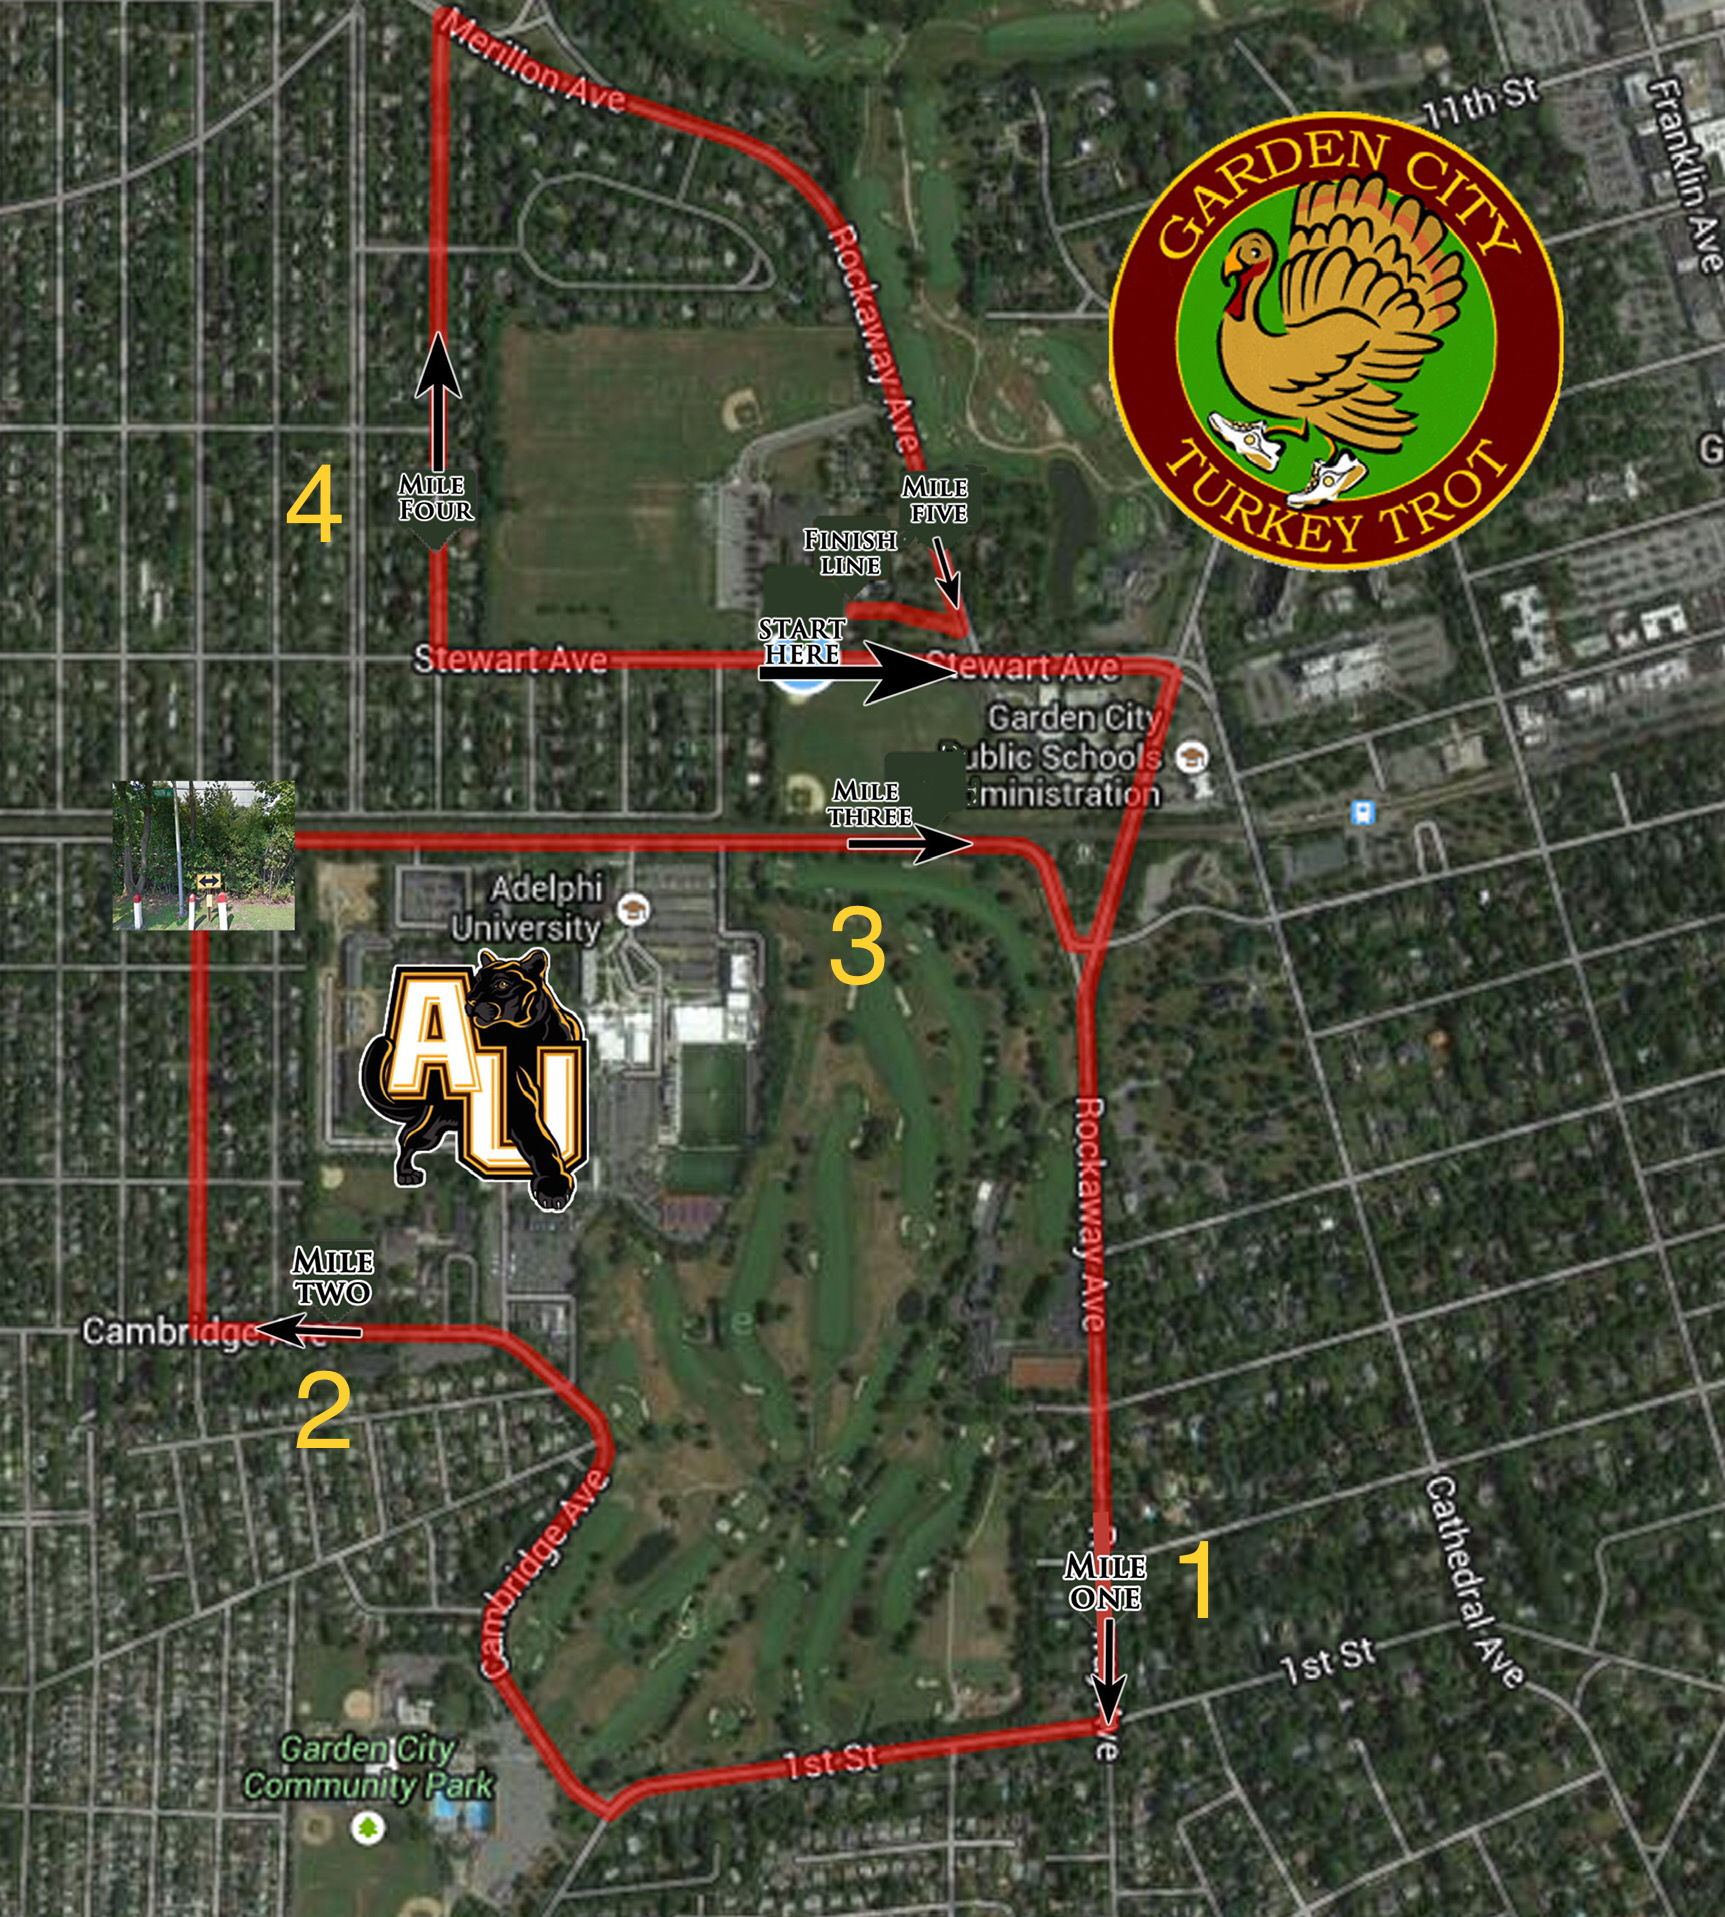 click here to see the garden city turkey trot 5 mile course - Garden City Turkey Trot